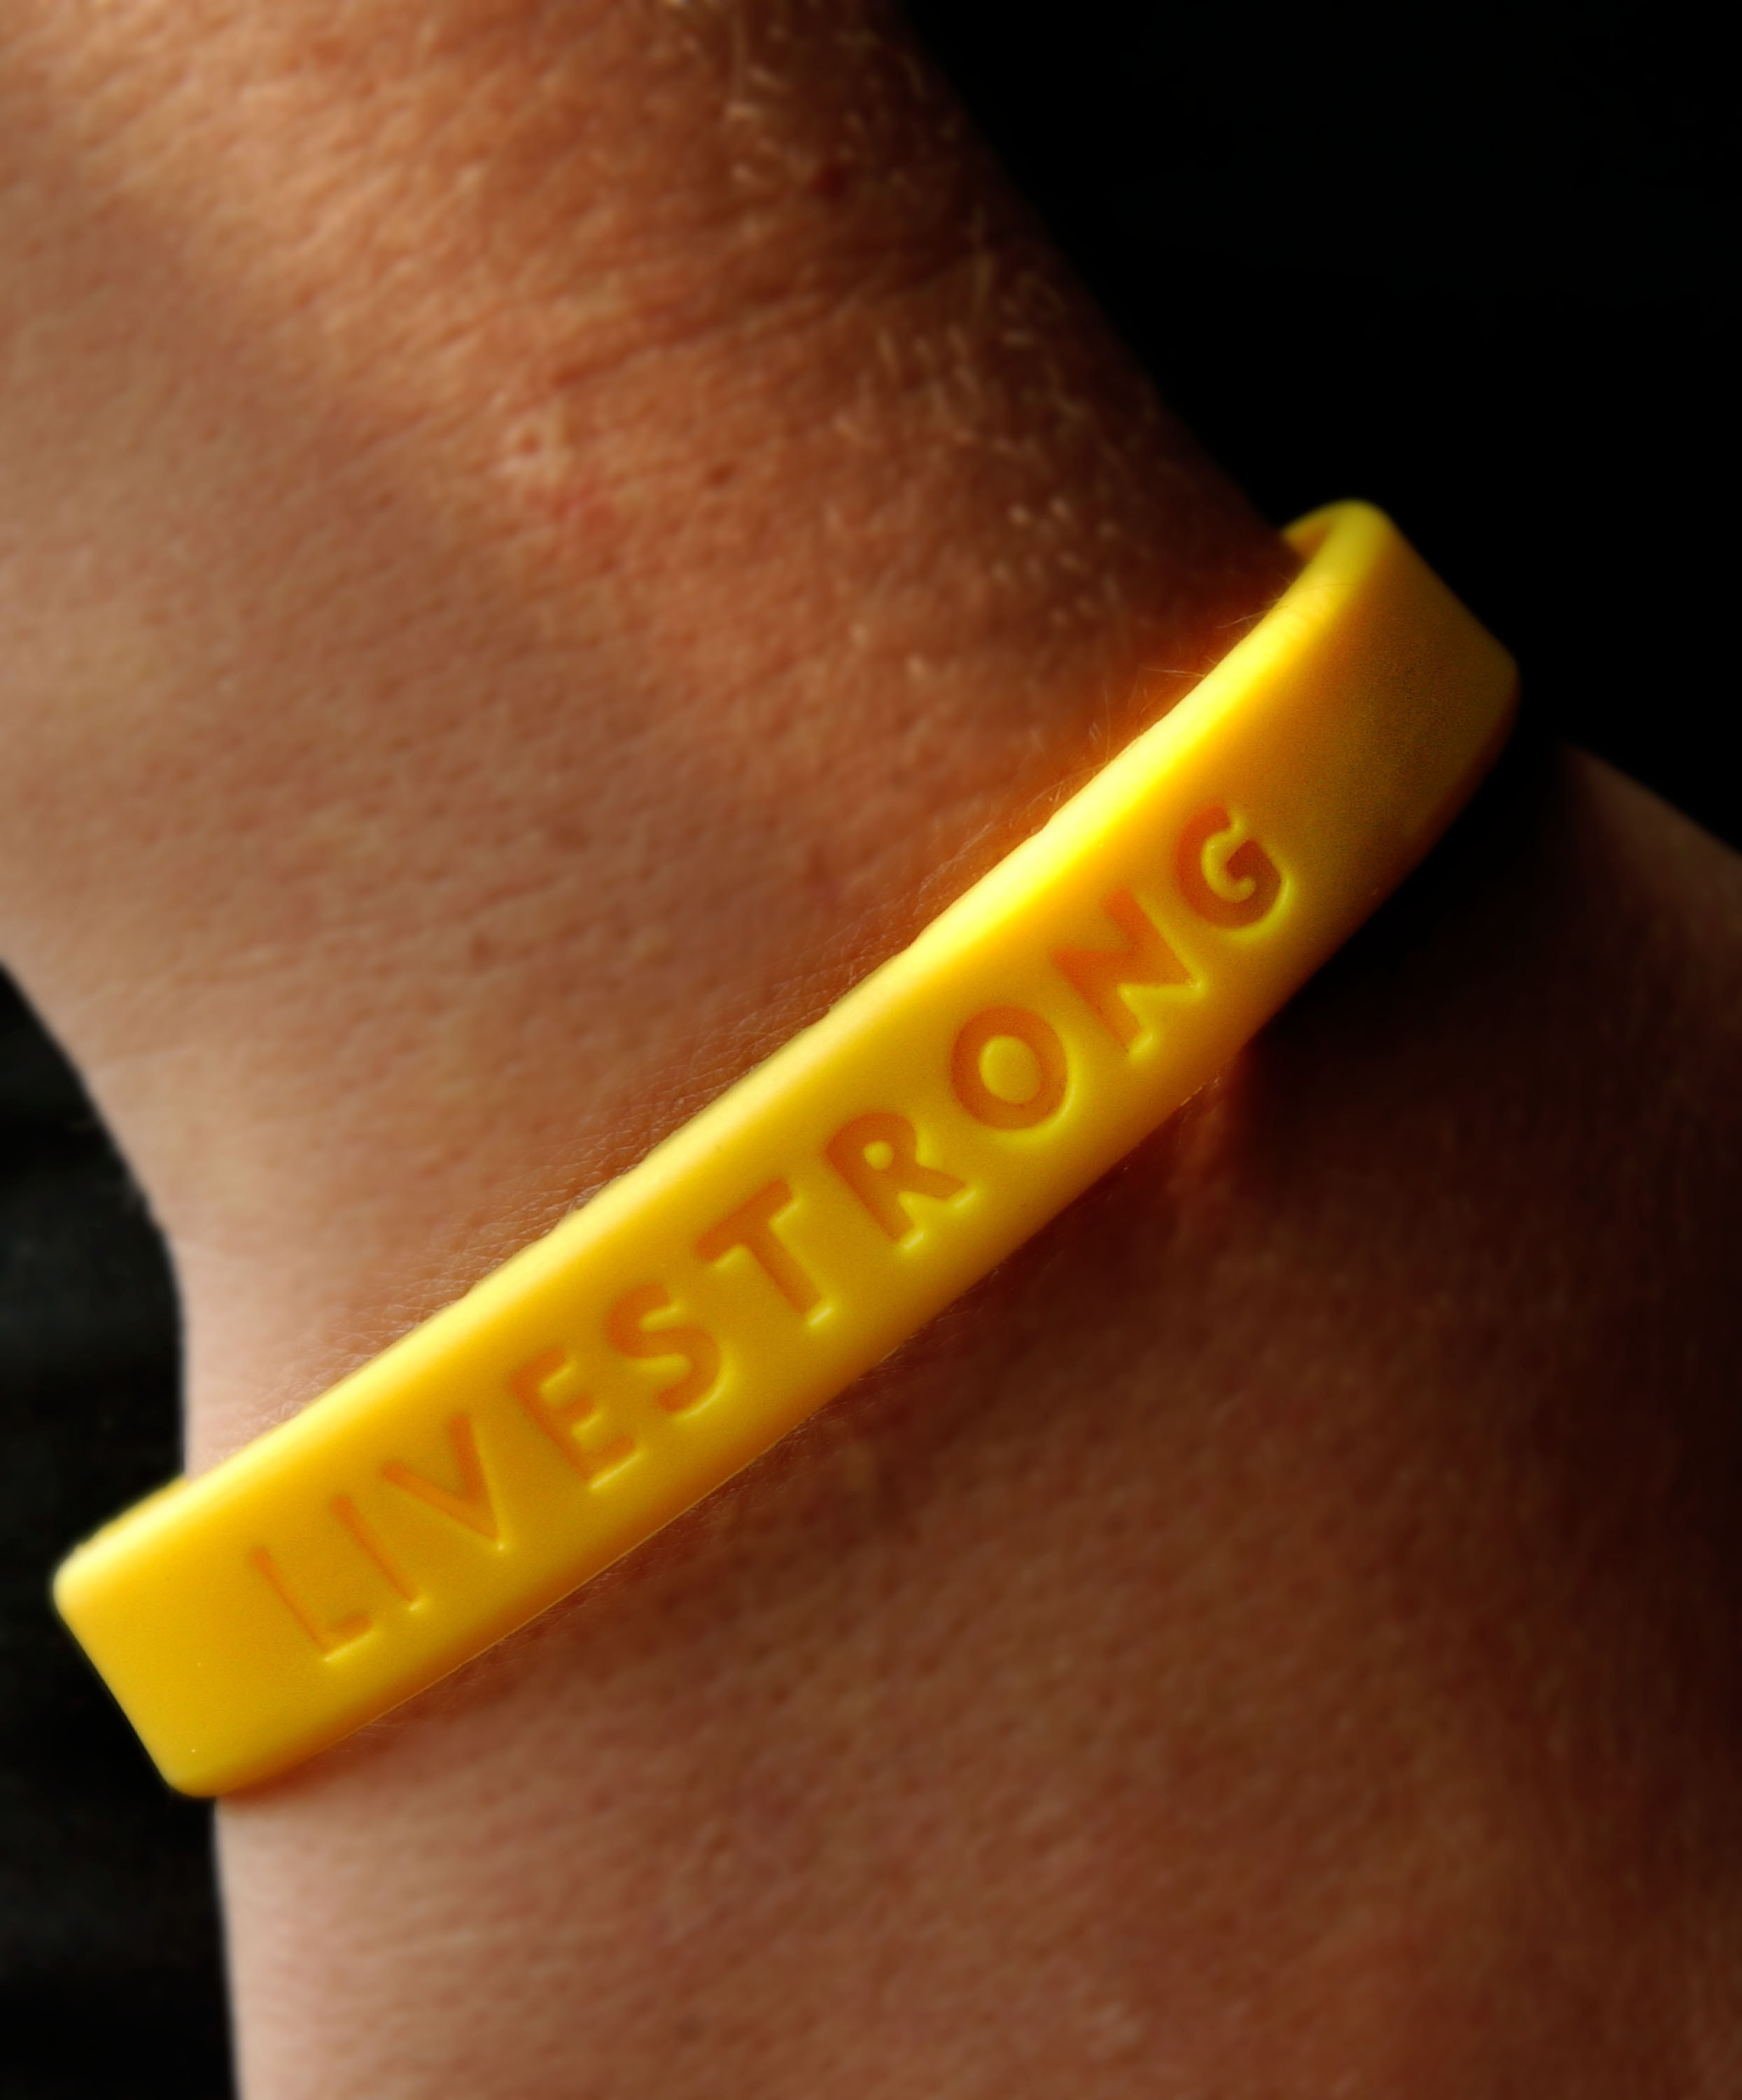 Close-up of a yellow LiveStrong bracelet being worn by someone.